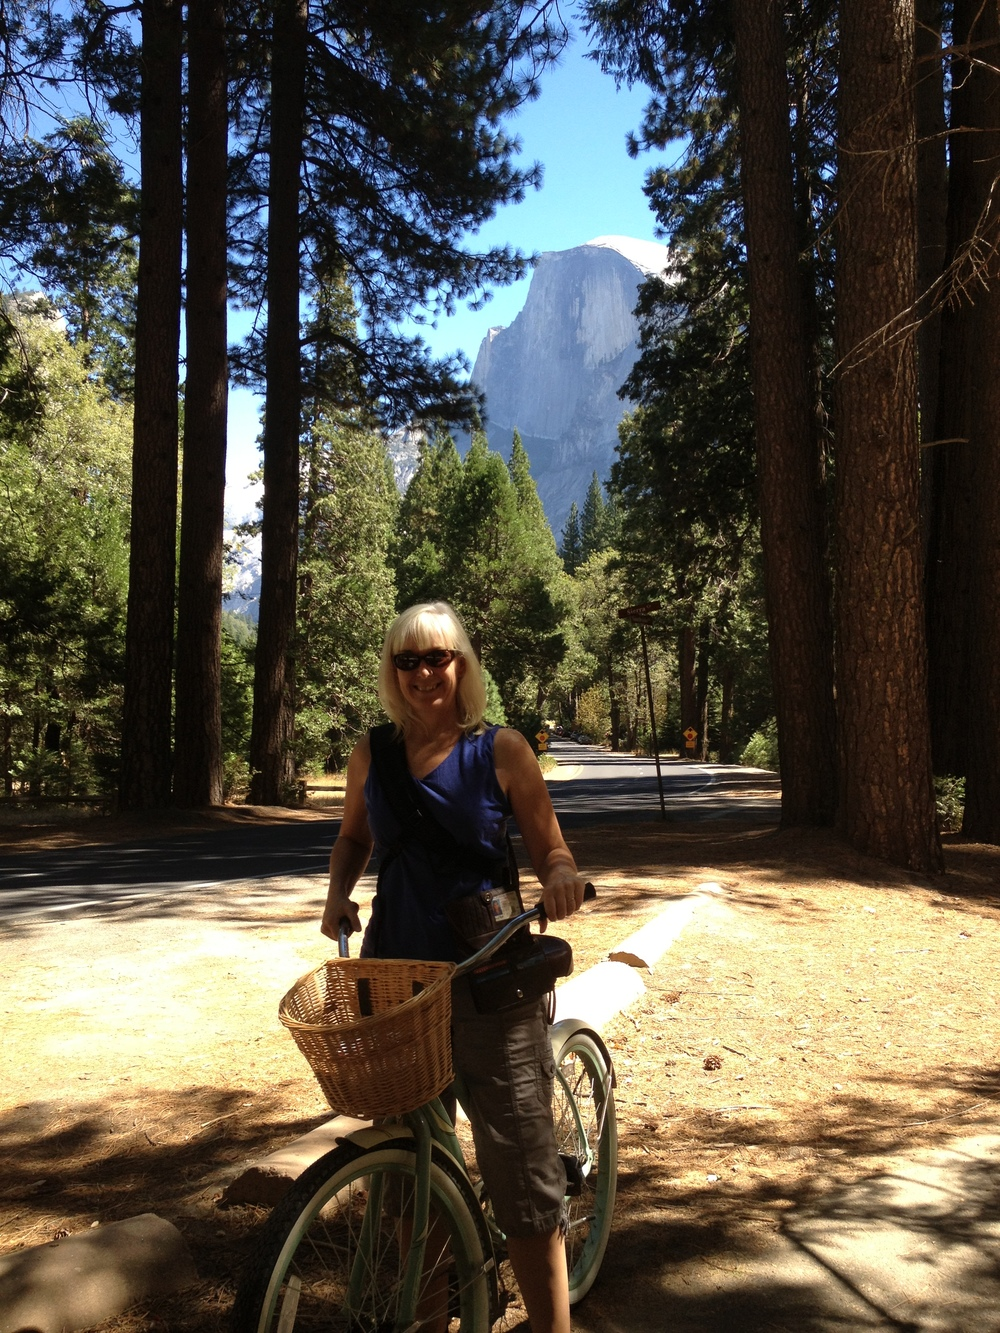 bike riding in Yosemite